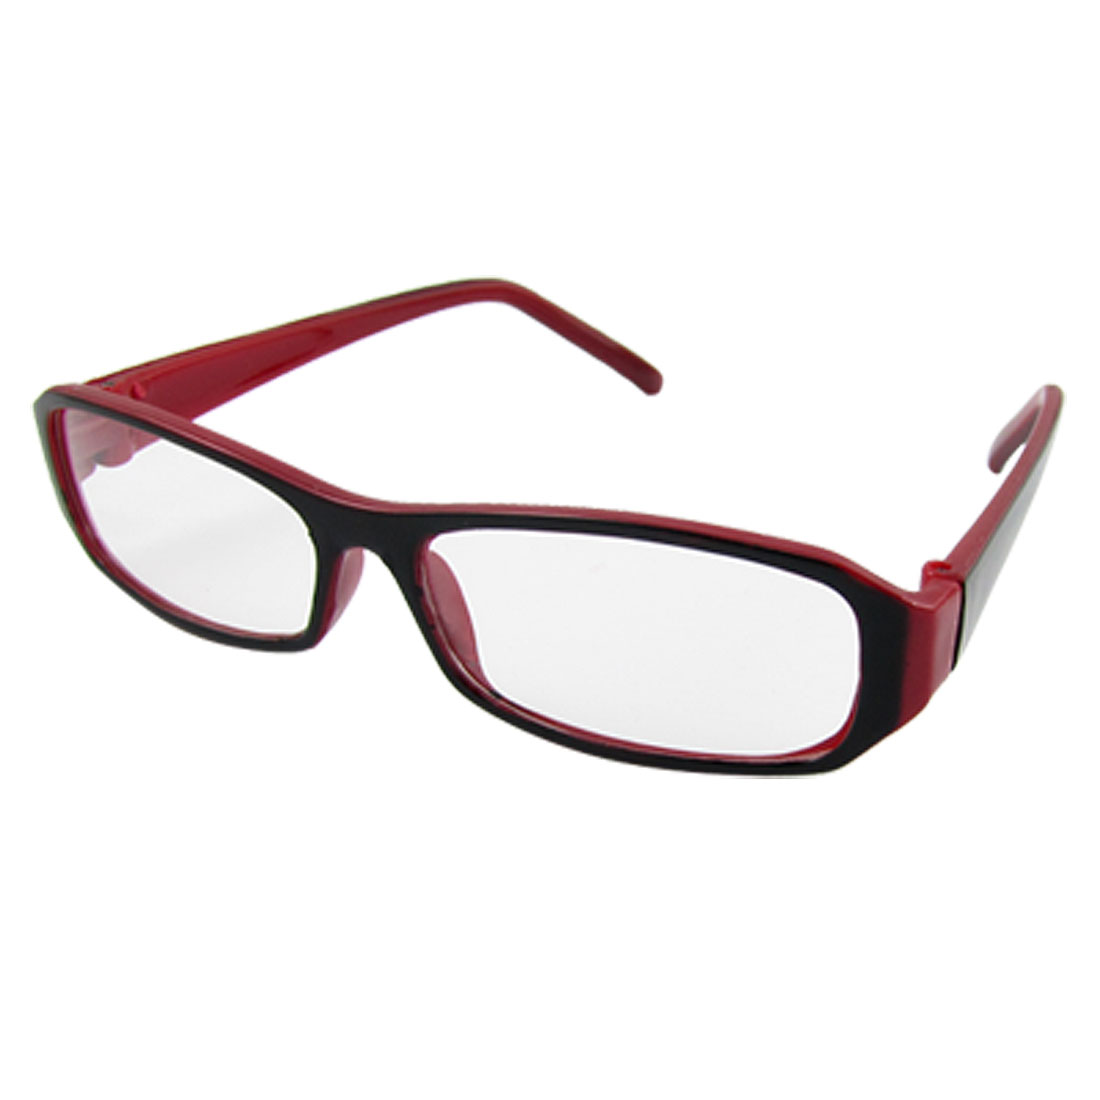 Ladies Black Red Rectangular Plastic Frame Plain Glasses